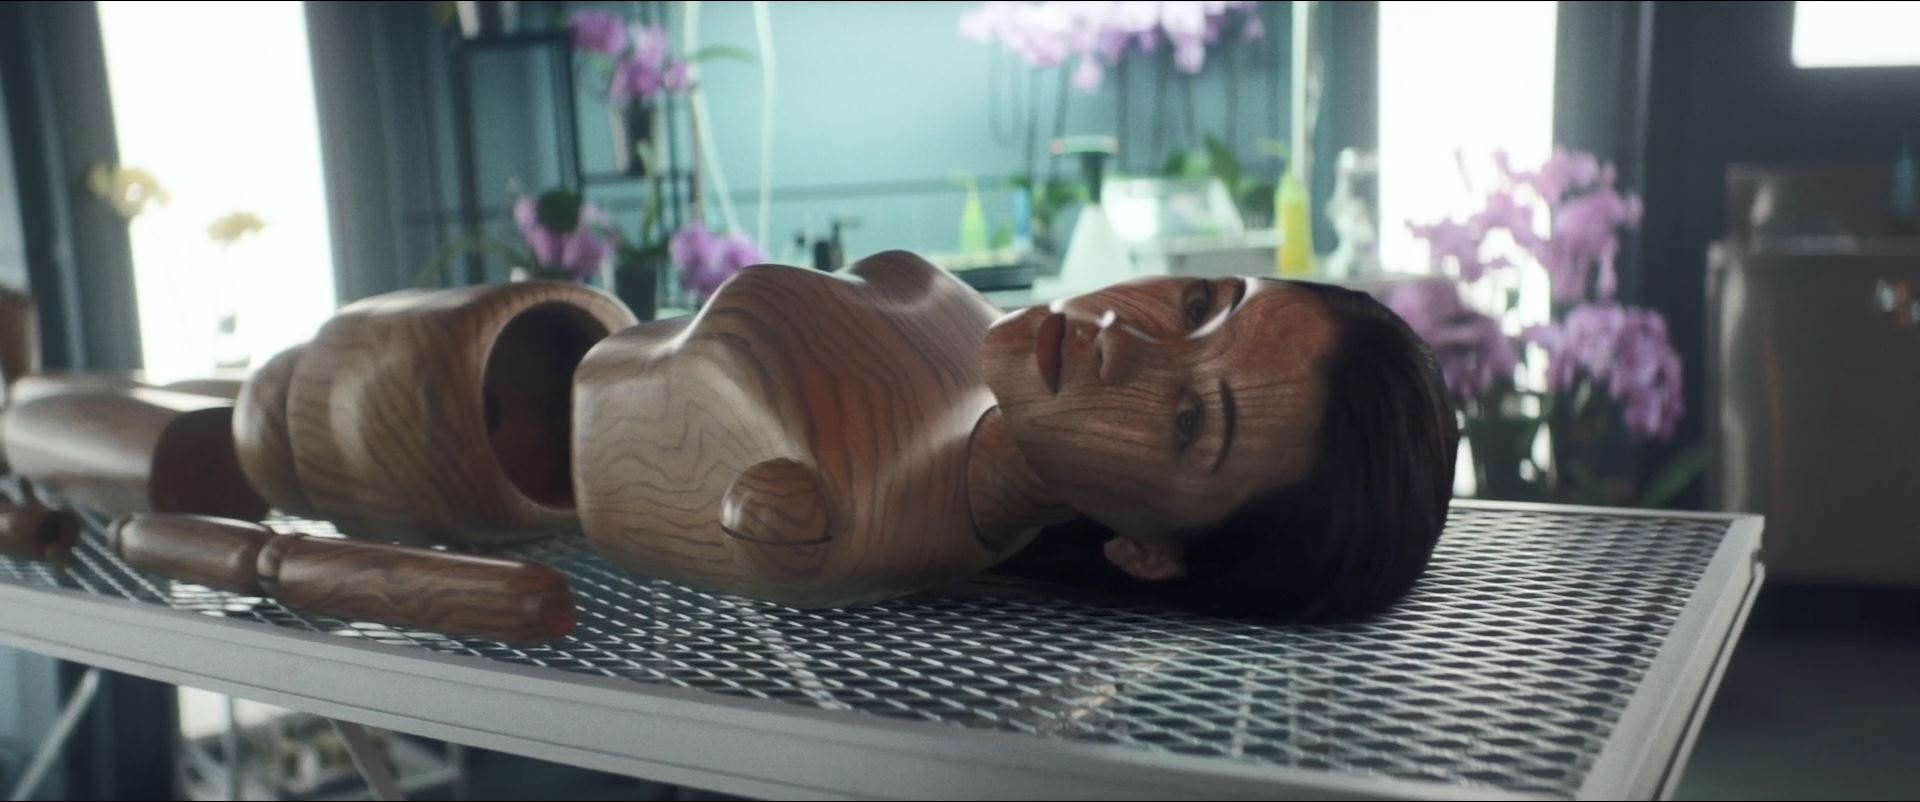 Star Trek Picard S01E06 Review - Soji as made from wood